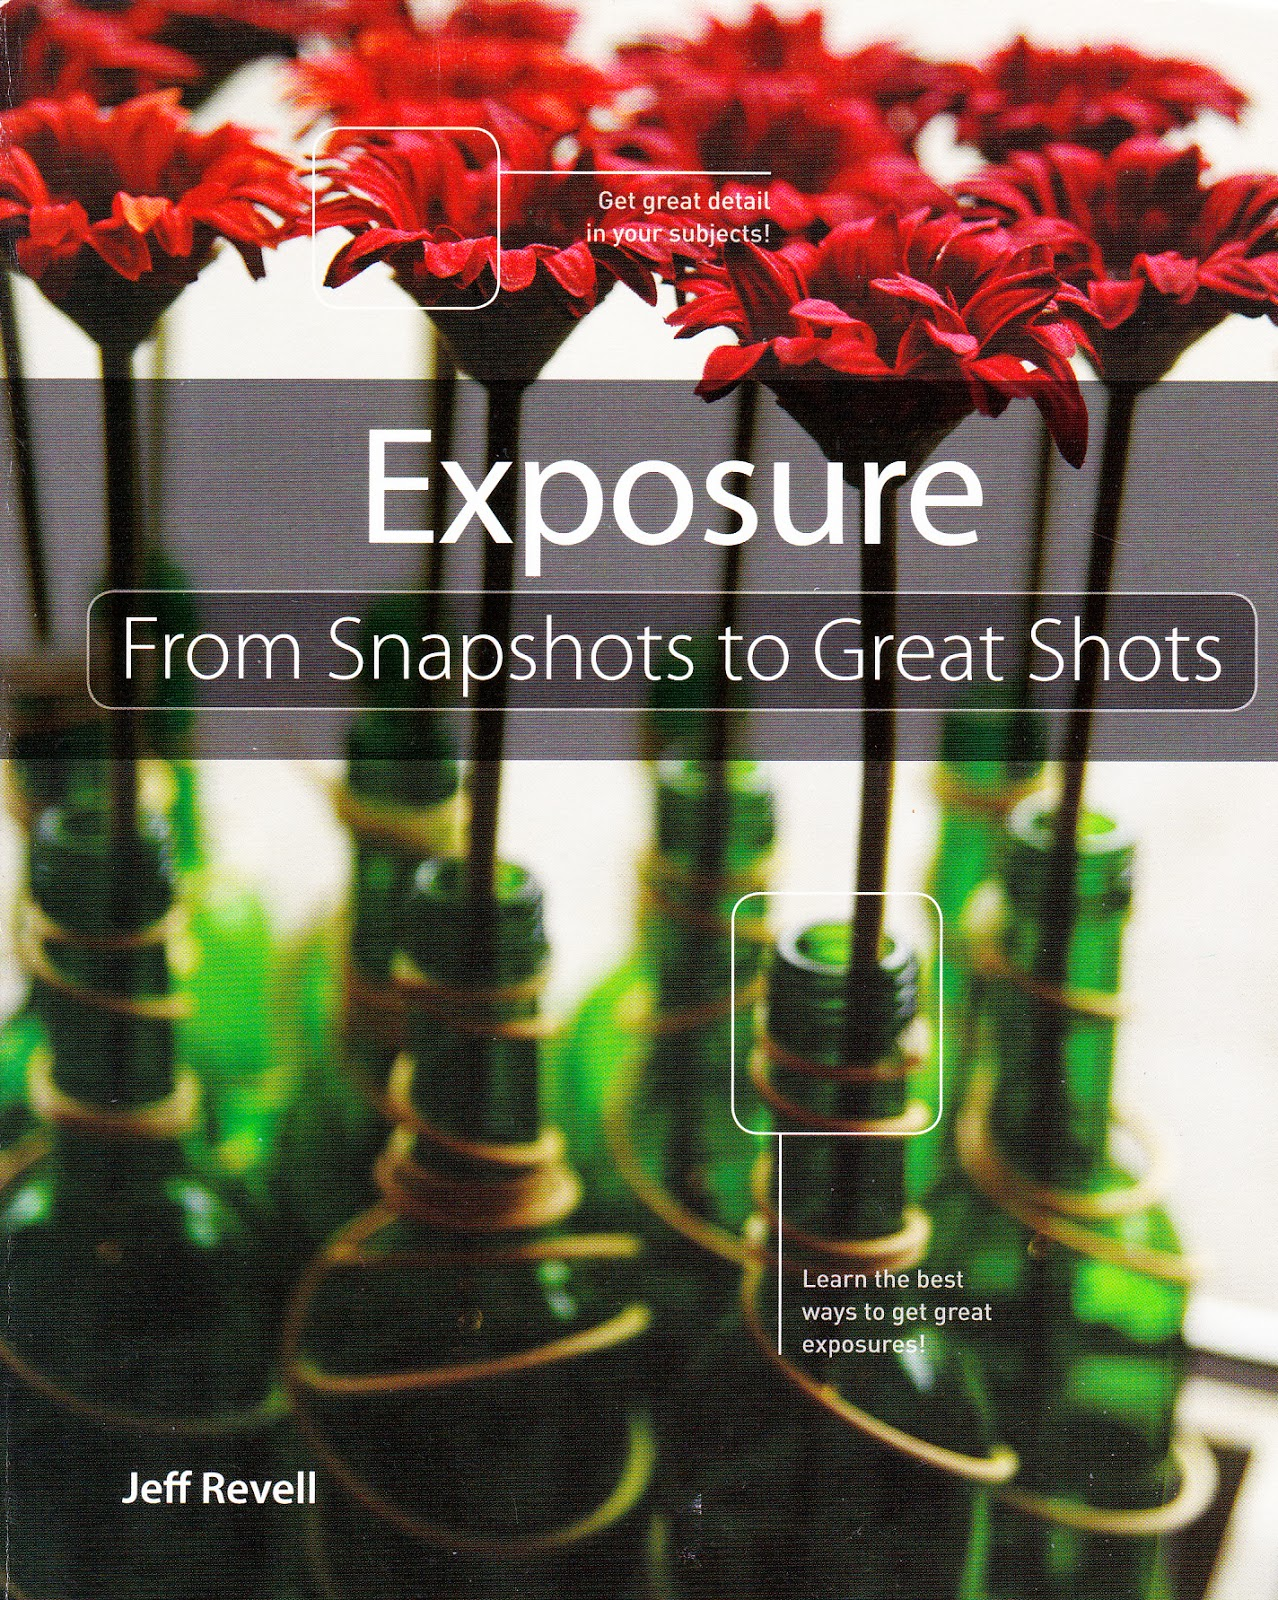 Exposure 'From Snapshots to Great Shots' By Jeff Revell